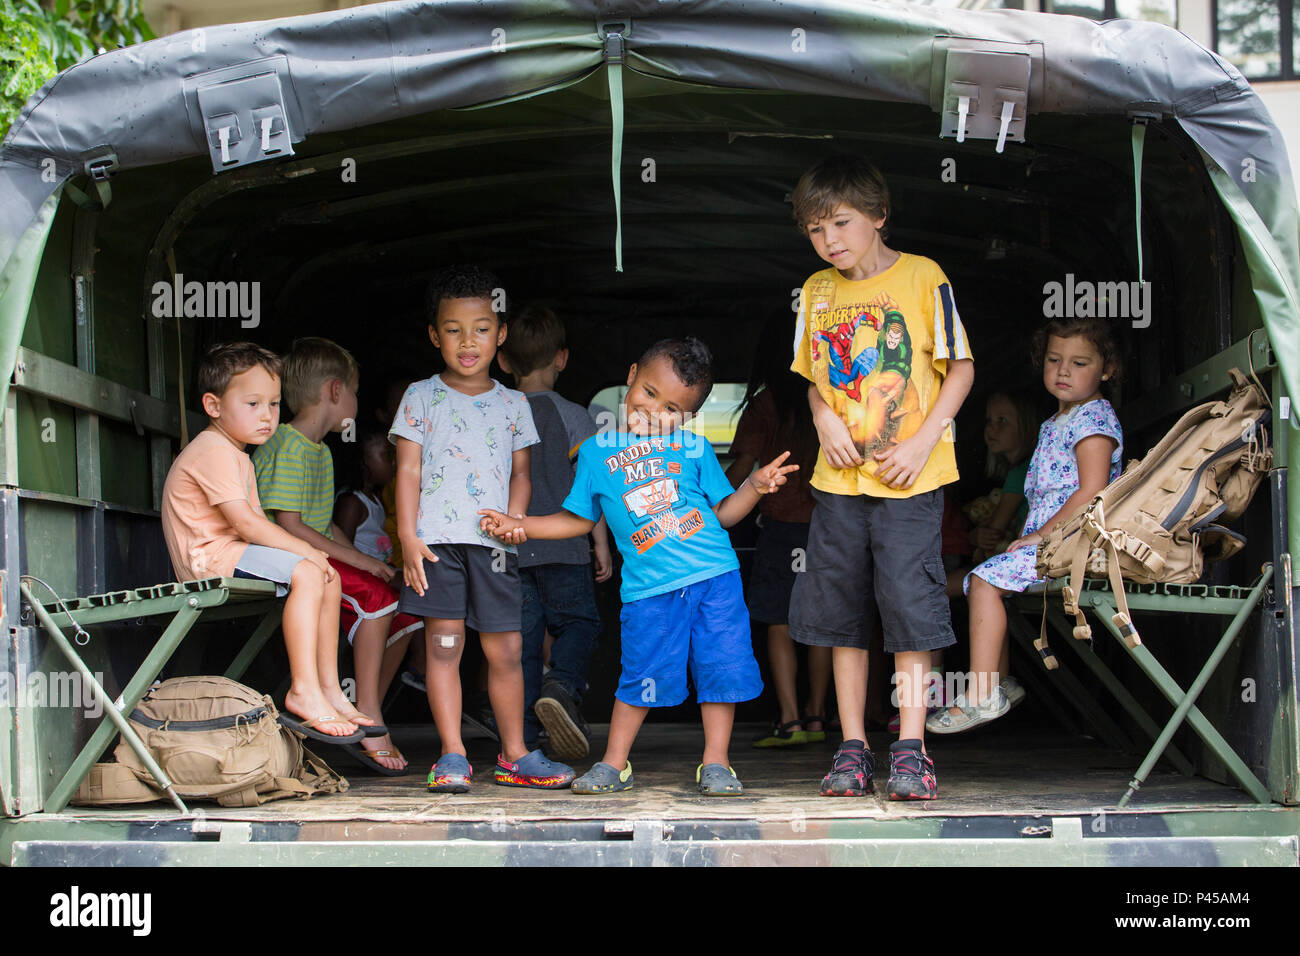 """KANEOHE, Hawaii – Children from the local community play in the back of a Medium Tactical Vehicle Replacement during a """"Meet the Community Heroes"""" event at the Kaneohe Public Library in Kaneohe, Hawaii, June 23, 2016. Children got to meet police officers, firefighters and Marines. Marines were given the opportunity to interact with children and parents as heroes from the community. Multiple vehicles from the organizations were on display for all the children to see and play in. (U.S. Marine Corps Photo by Lance Cpl. Jesus Sepulveda Torres) - Stock Image"""